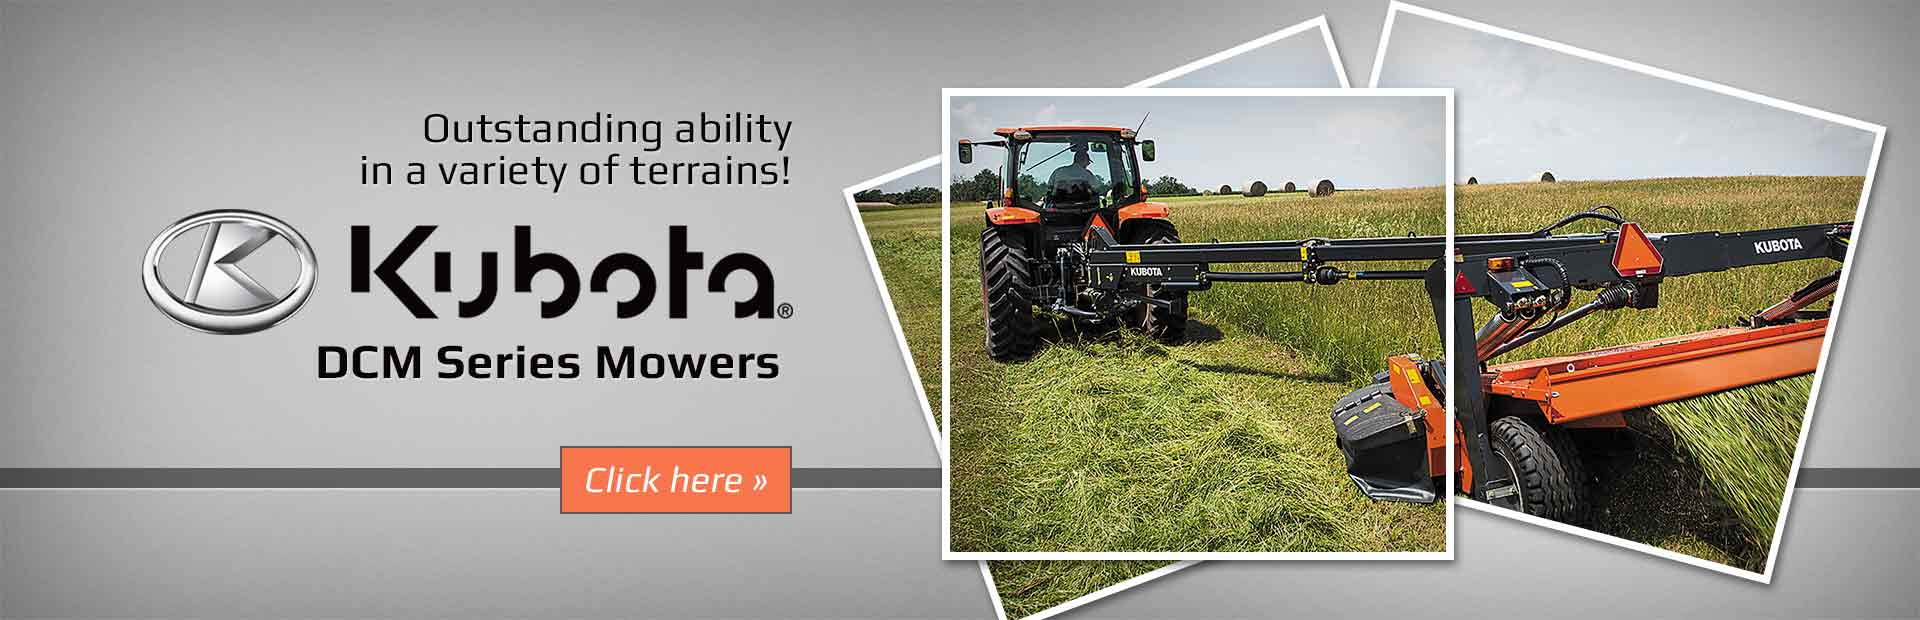 Click here to view our selection of Kubota DCM series mowers!